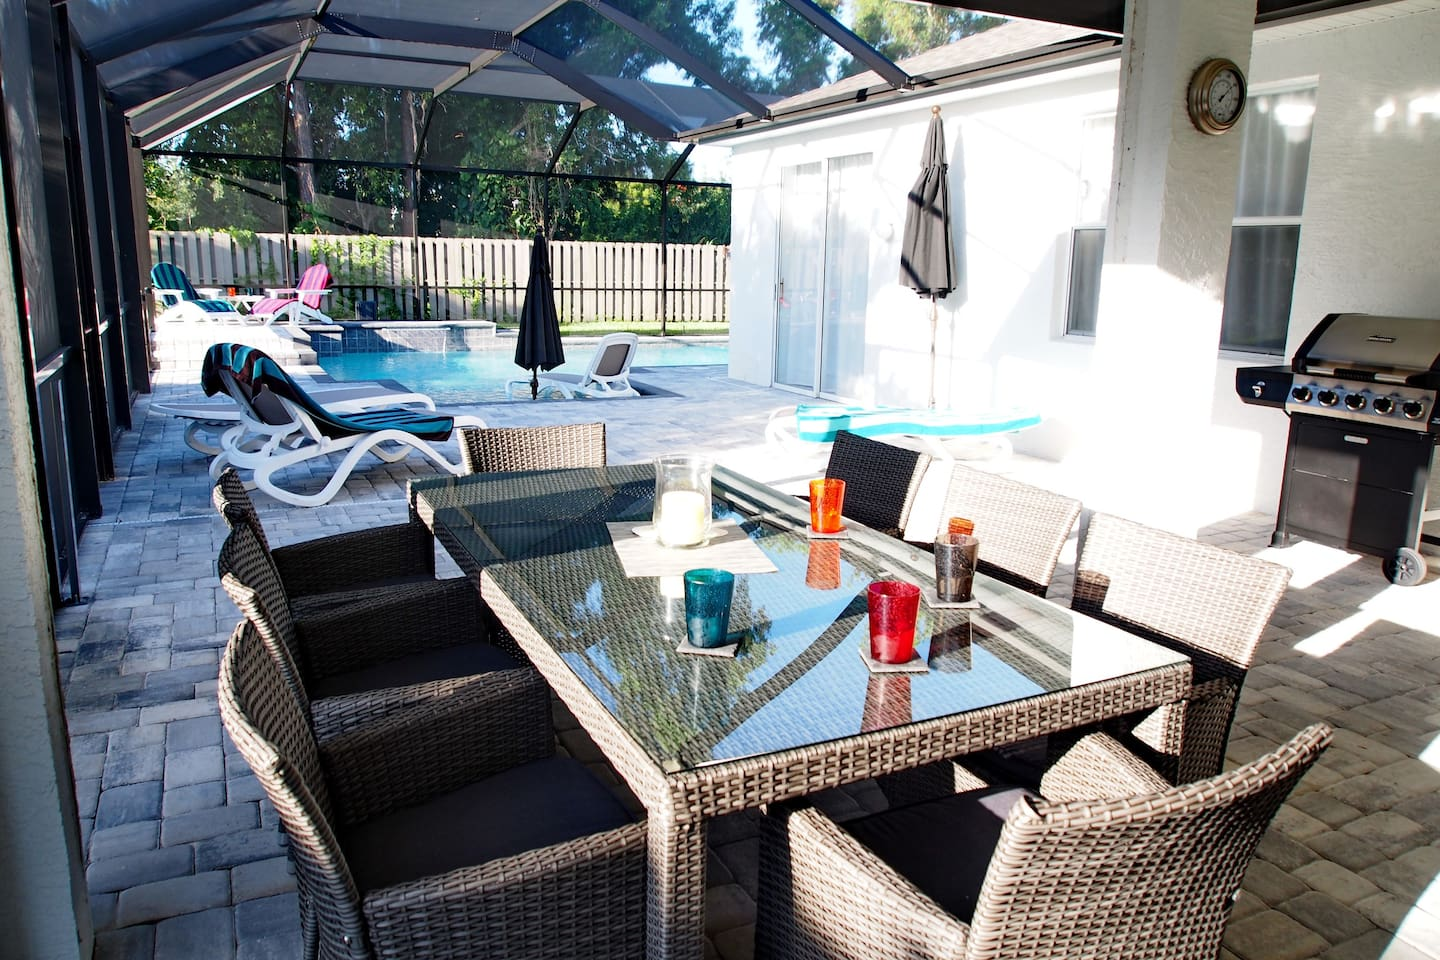 Pool with sunlounger, Dining Area and Gas Grill